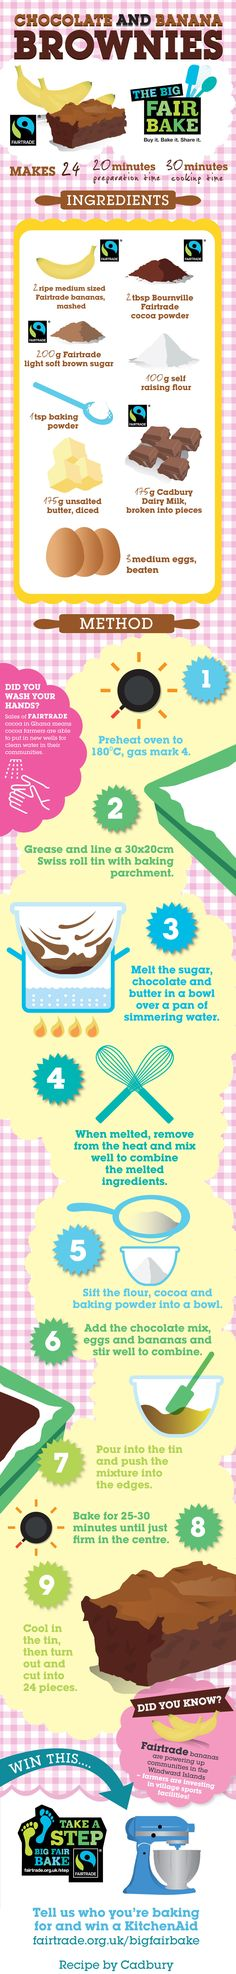 A handy infographic showing how to bake Fairtrade chocolate and banana brownies.        Visit www.fairtrade.org.uk/bigfairbake for more Fairtrade recipes.